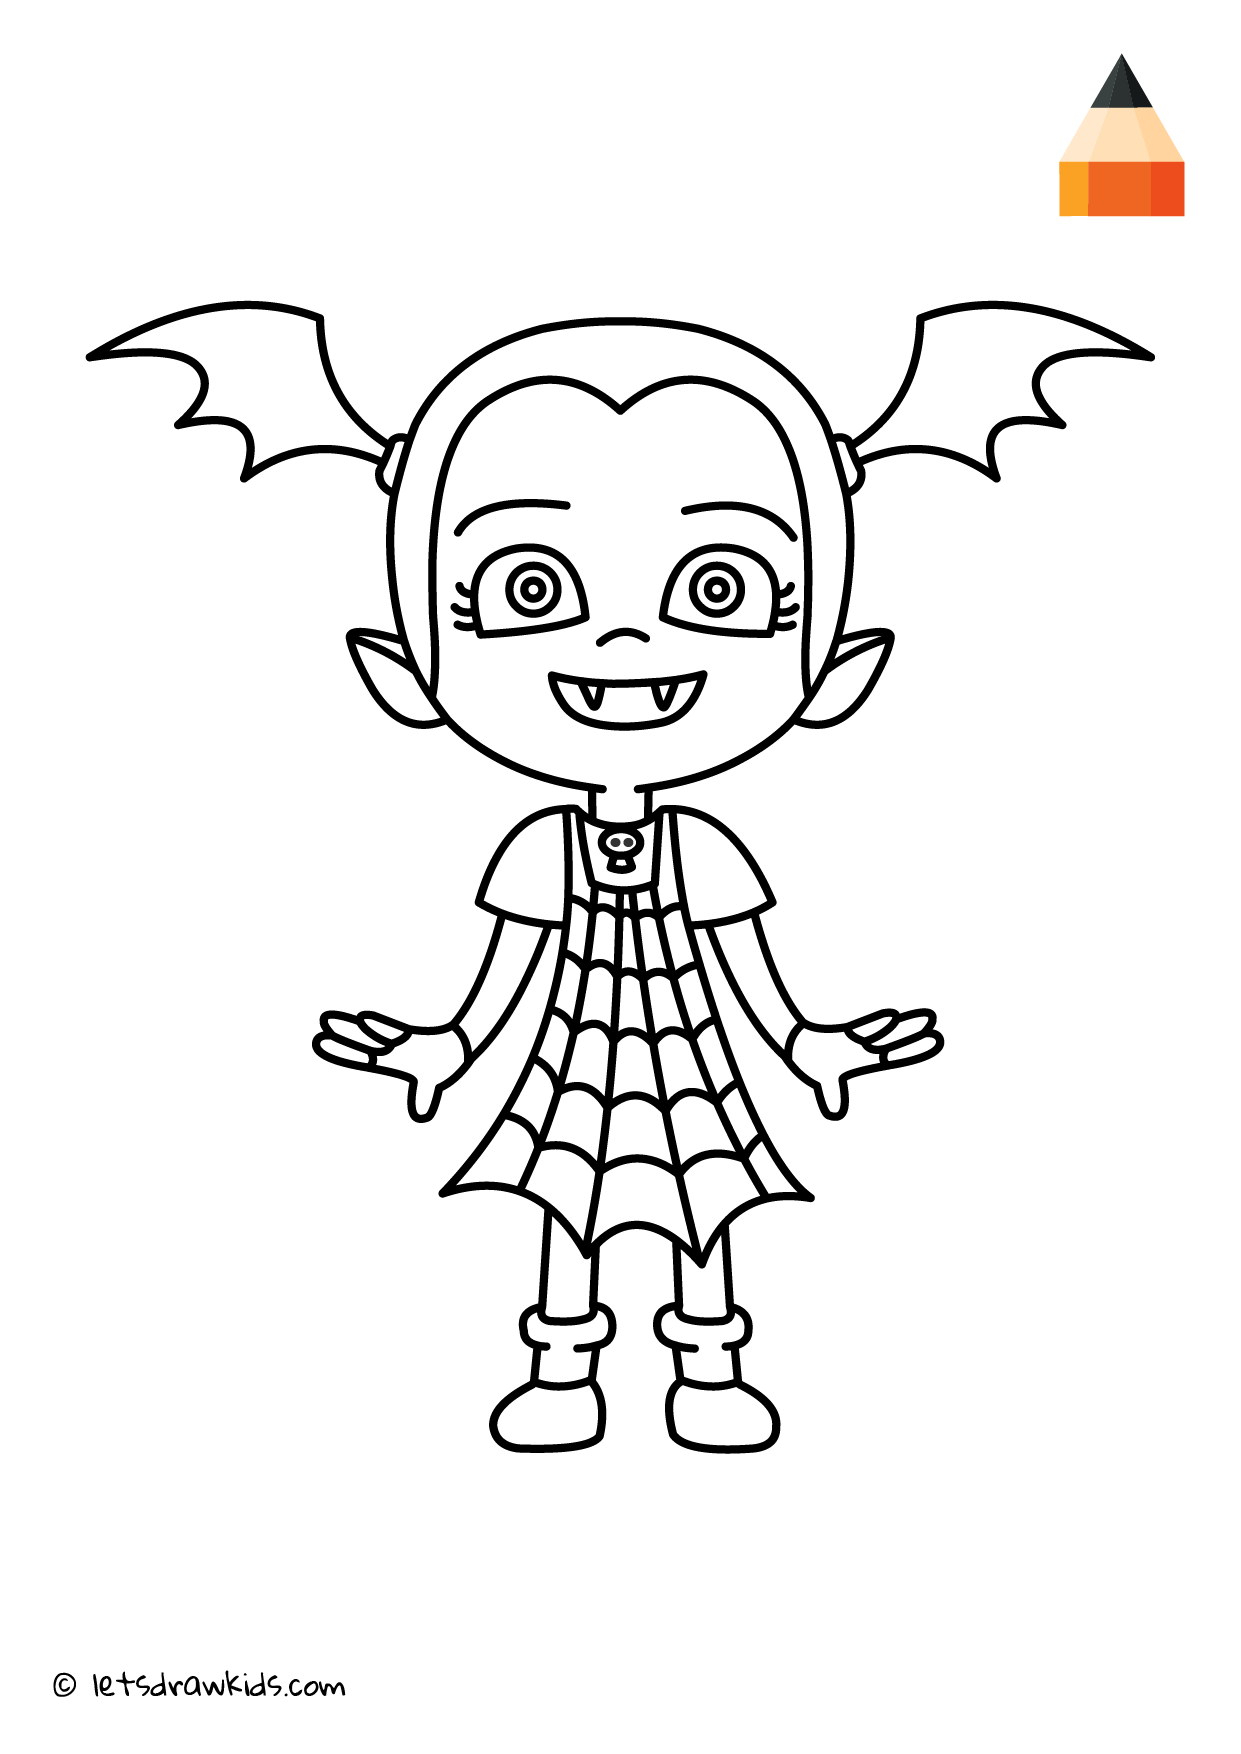 Coloring Page Vampirina Coloring Pages In 2019 Halloween